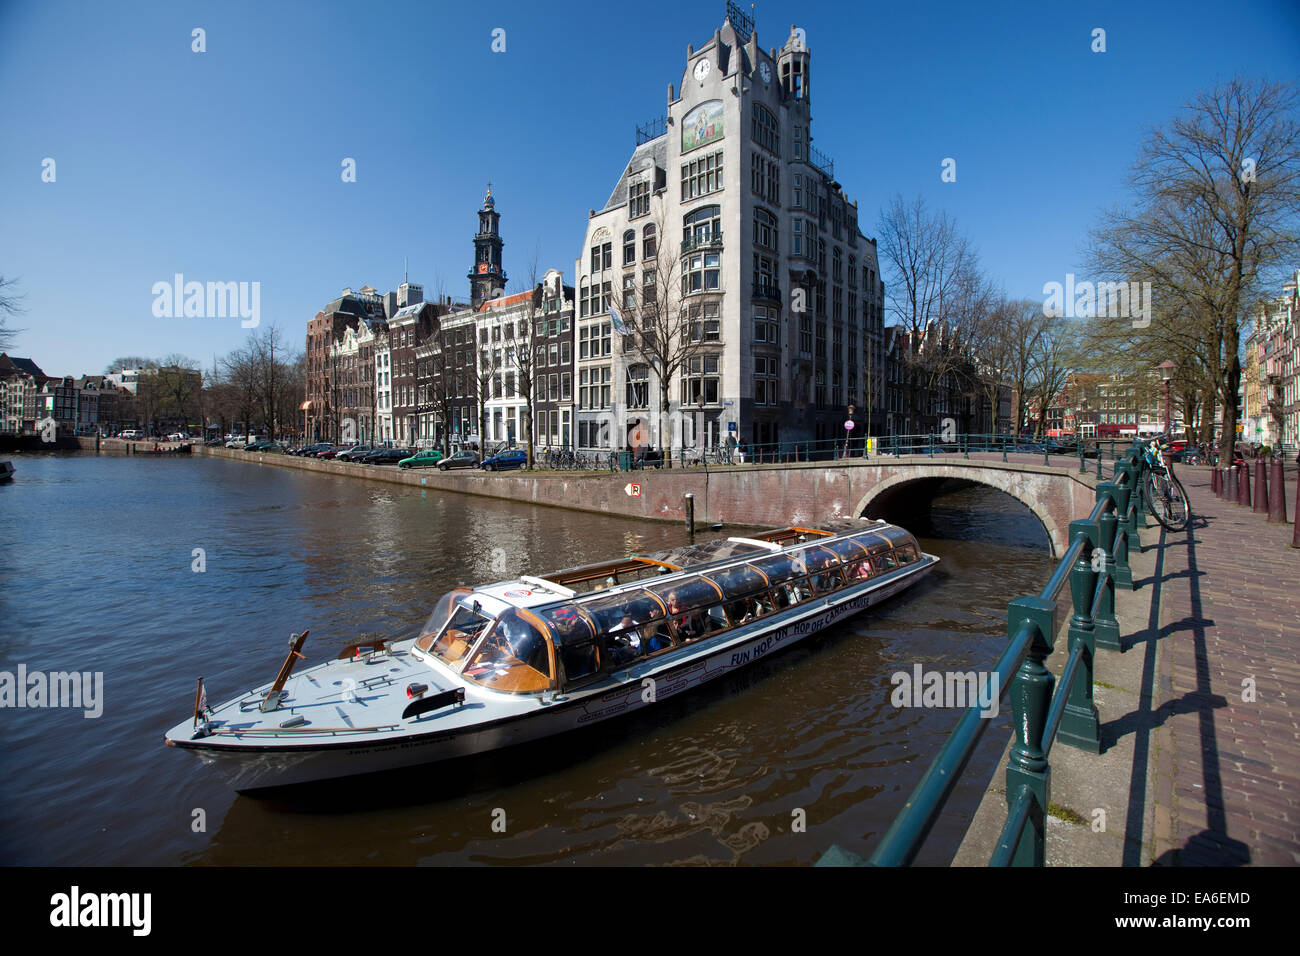 Netherlands, Amsterdam, Tour boat on canal - Stock Image